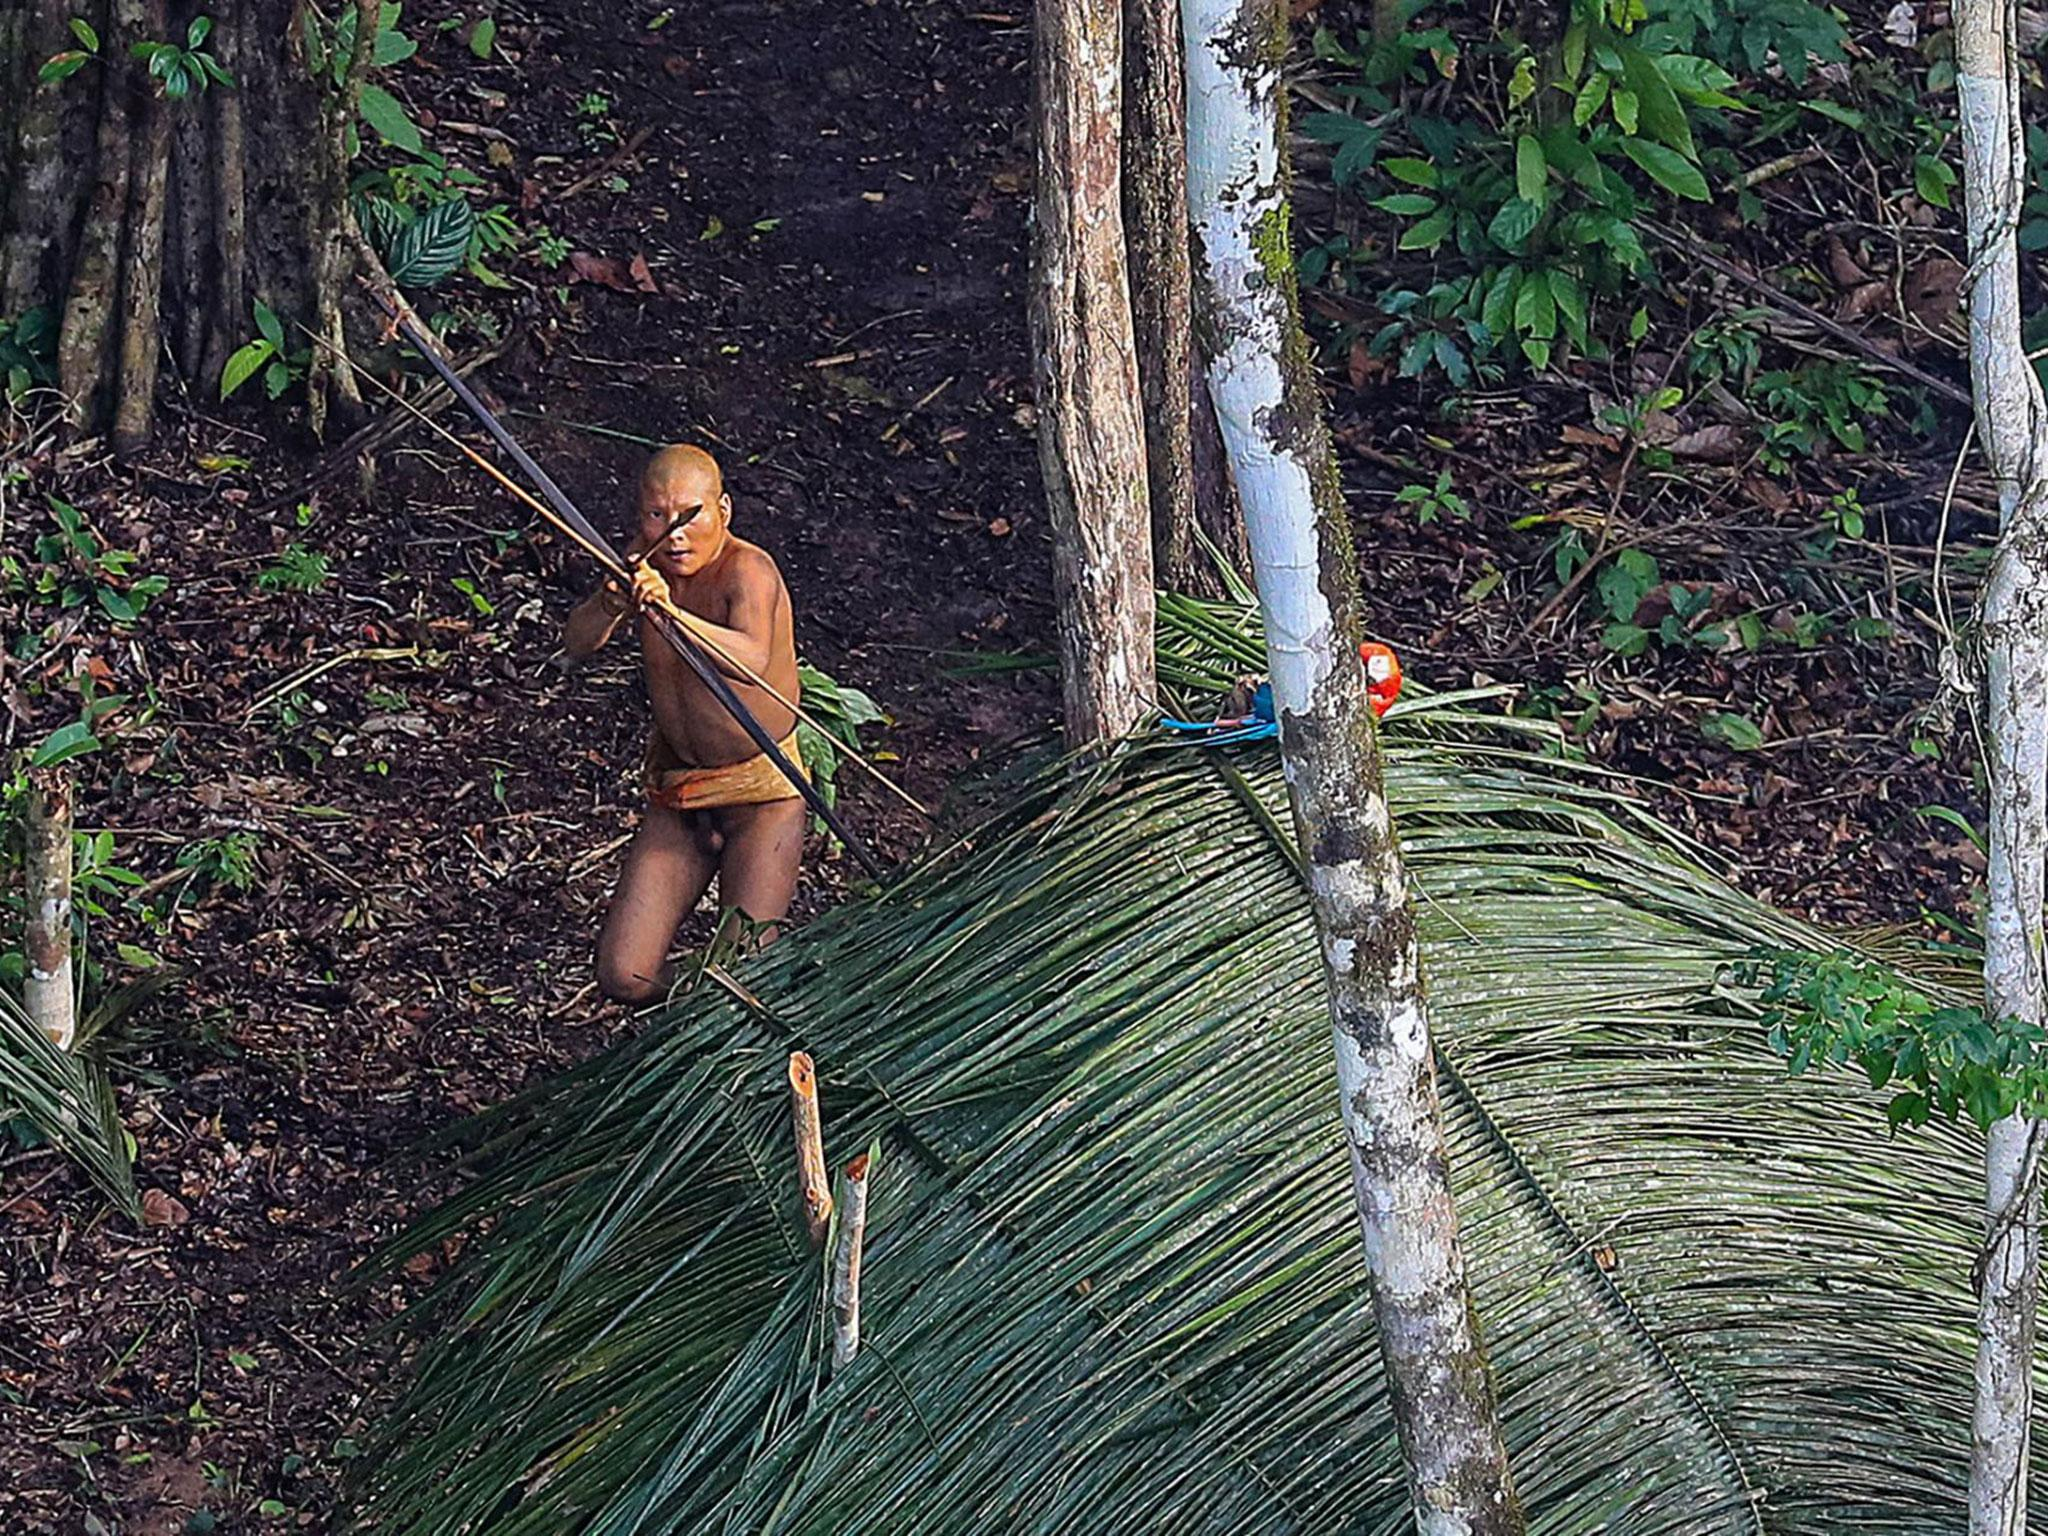 Photographer captures images of uncontacted ancient amazon tribe photographer captures images of uncontacted ancient amazon tribe the independent sciox Image collections